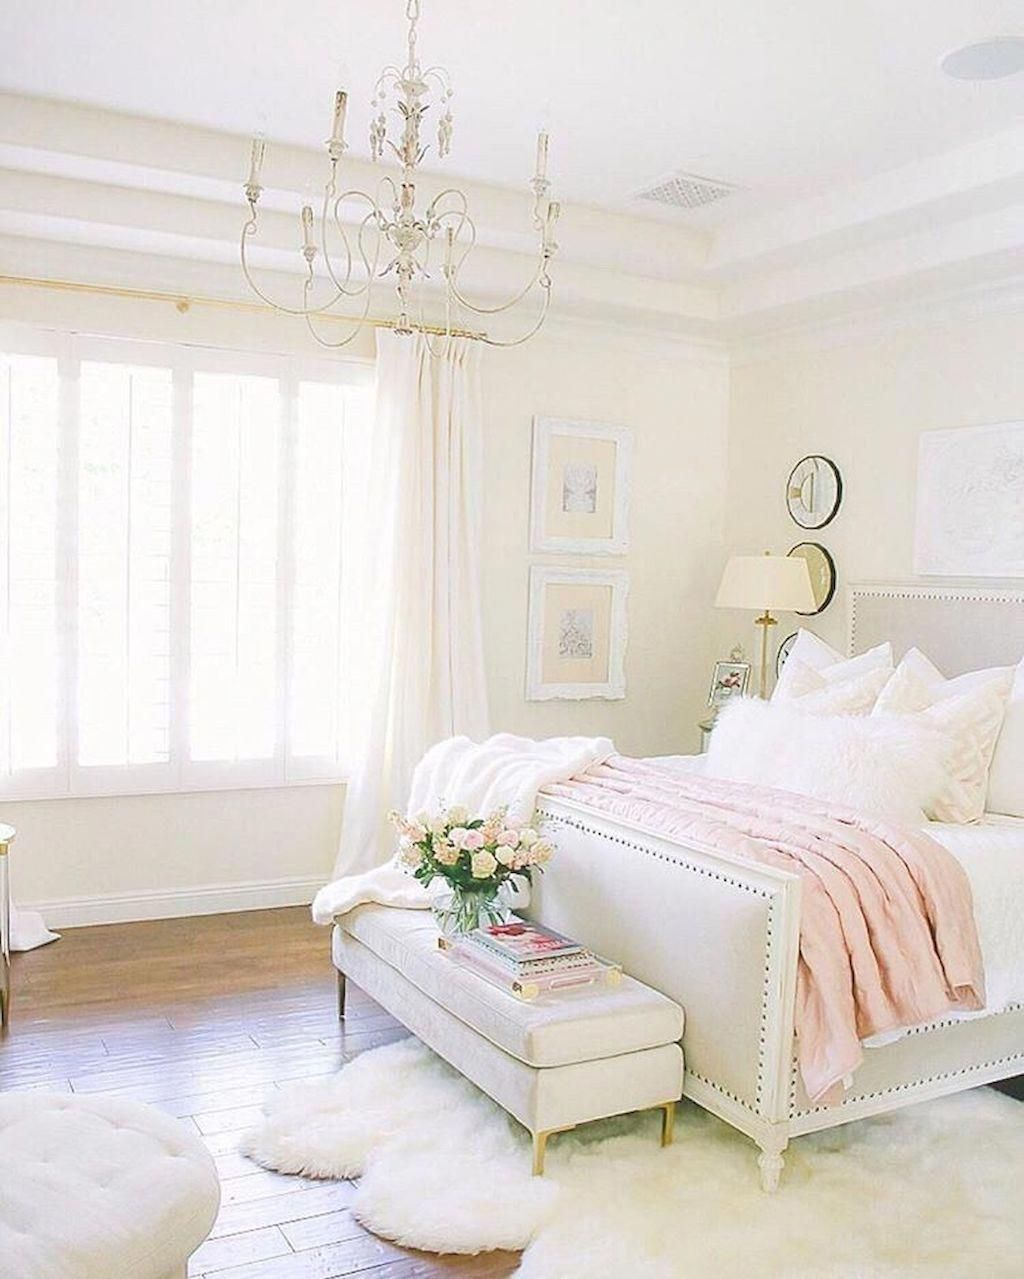 10 Luxe Chambre Idees Superbe Lits De Luxe A Glamorous